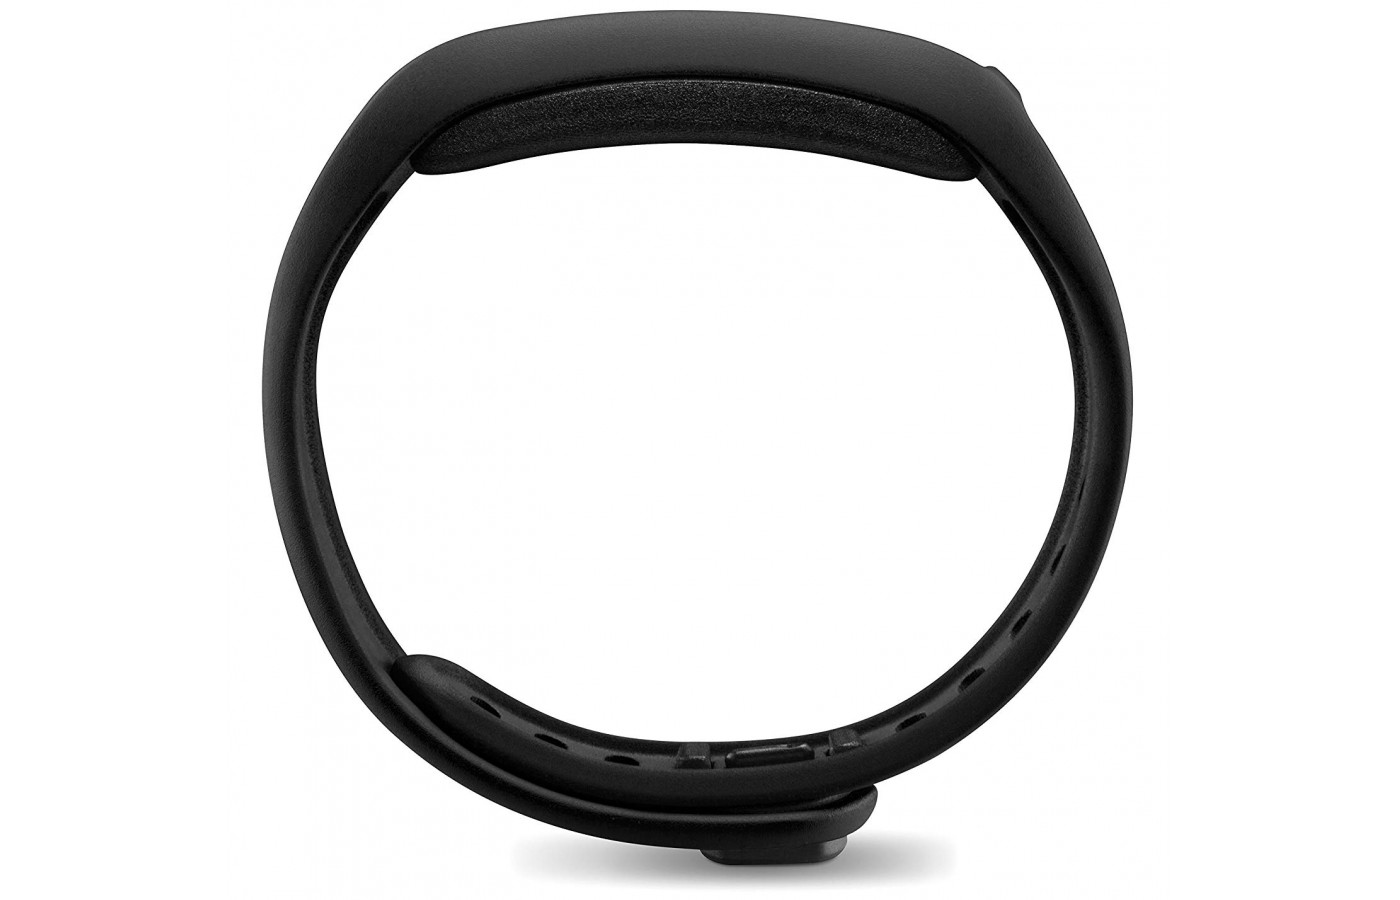 It curves to fit naturally and comfortably on top of the wrist.